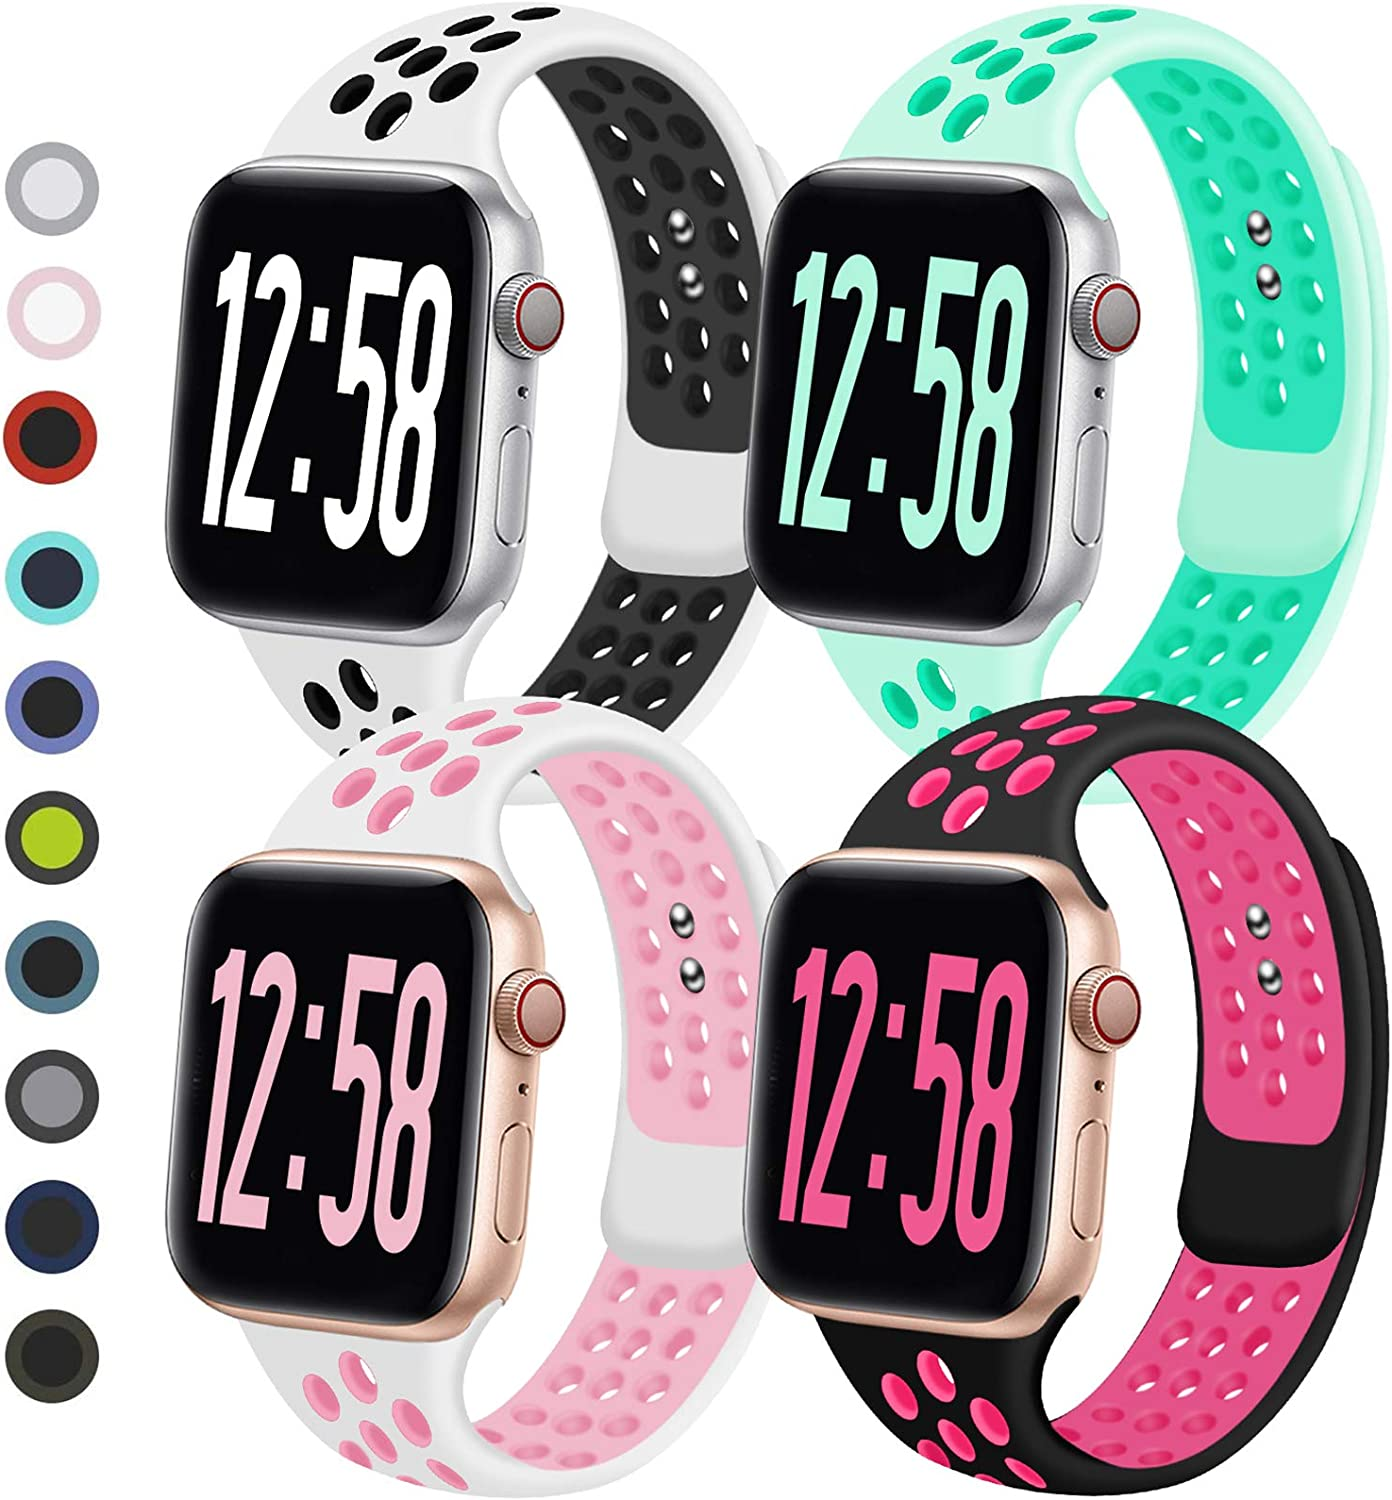 Geoumy 4 Pack Sport Band Compatible for Apple Watch Bands 38mm 40mm 42mm 44mm, Breathable Soft Silicone Band Replacement Wristband Men Women Compatible with iWatch Series 1/2/3/4/5/6 SE